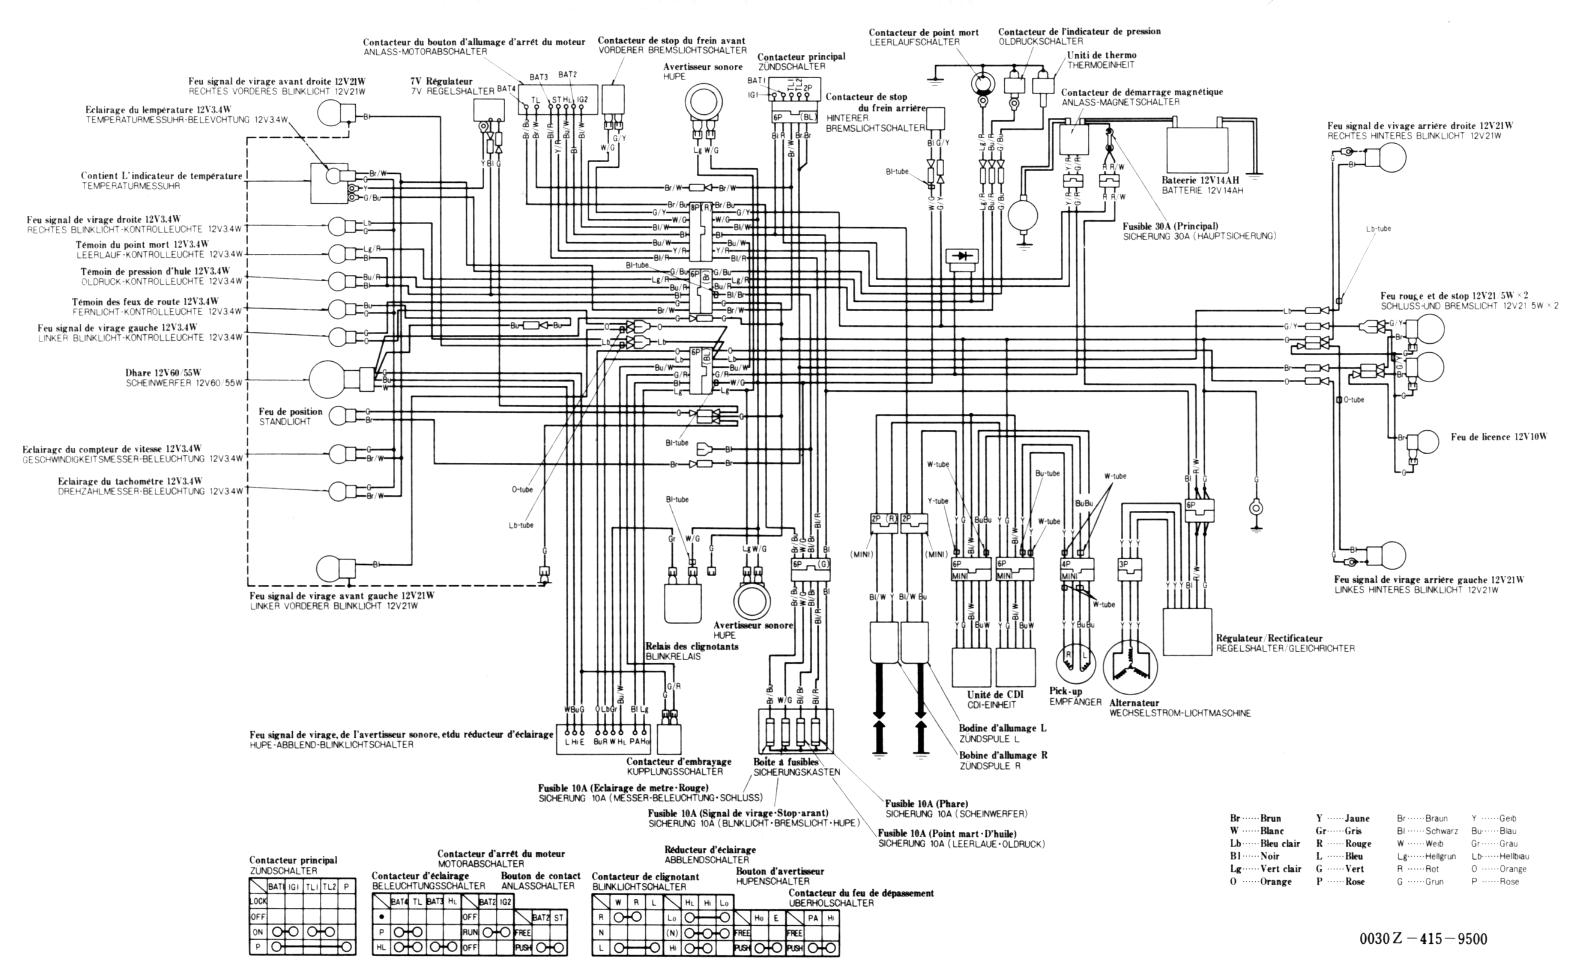 1982 Honda Cx500 Wiring Diagram List Of Schematic Circuit Gl500 File Cx And Gl Wiki Rh Motovillage Org Custom Silverwing